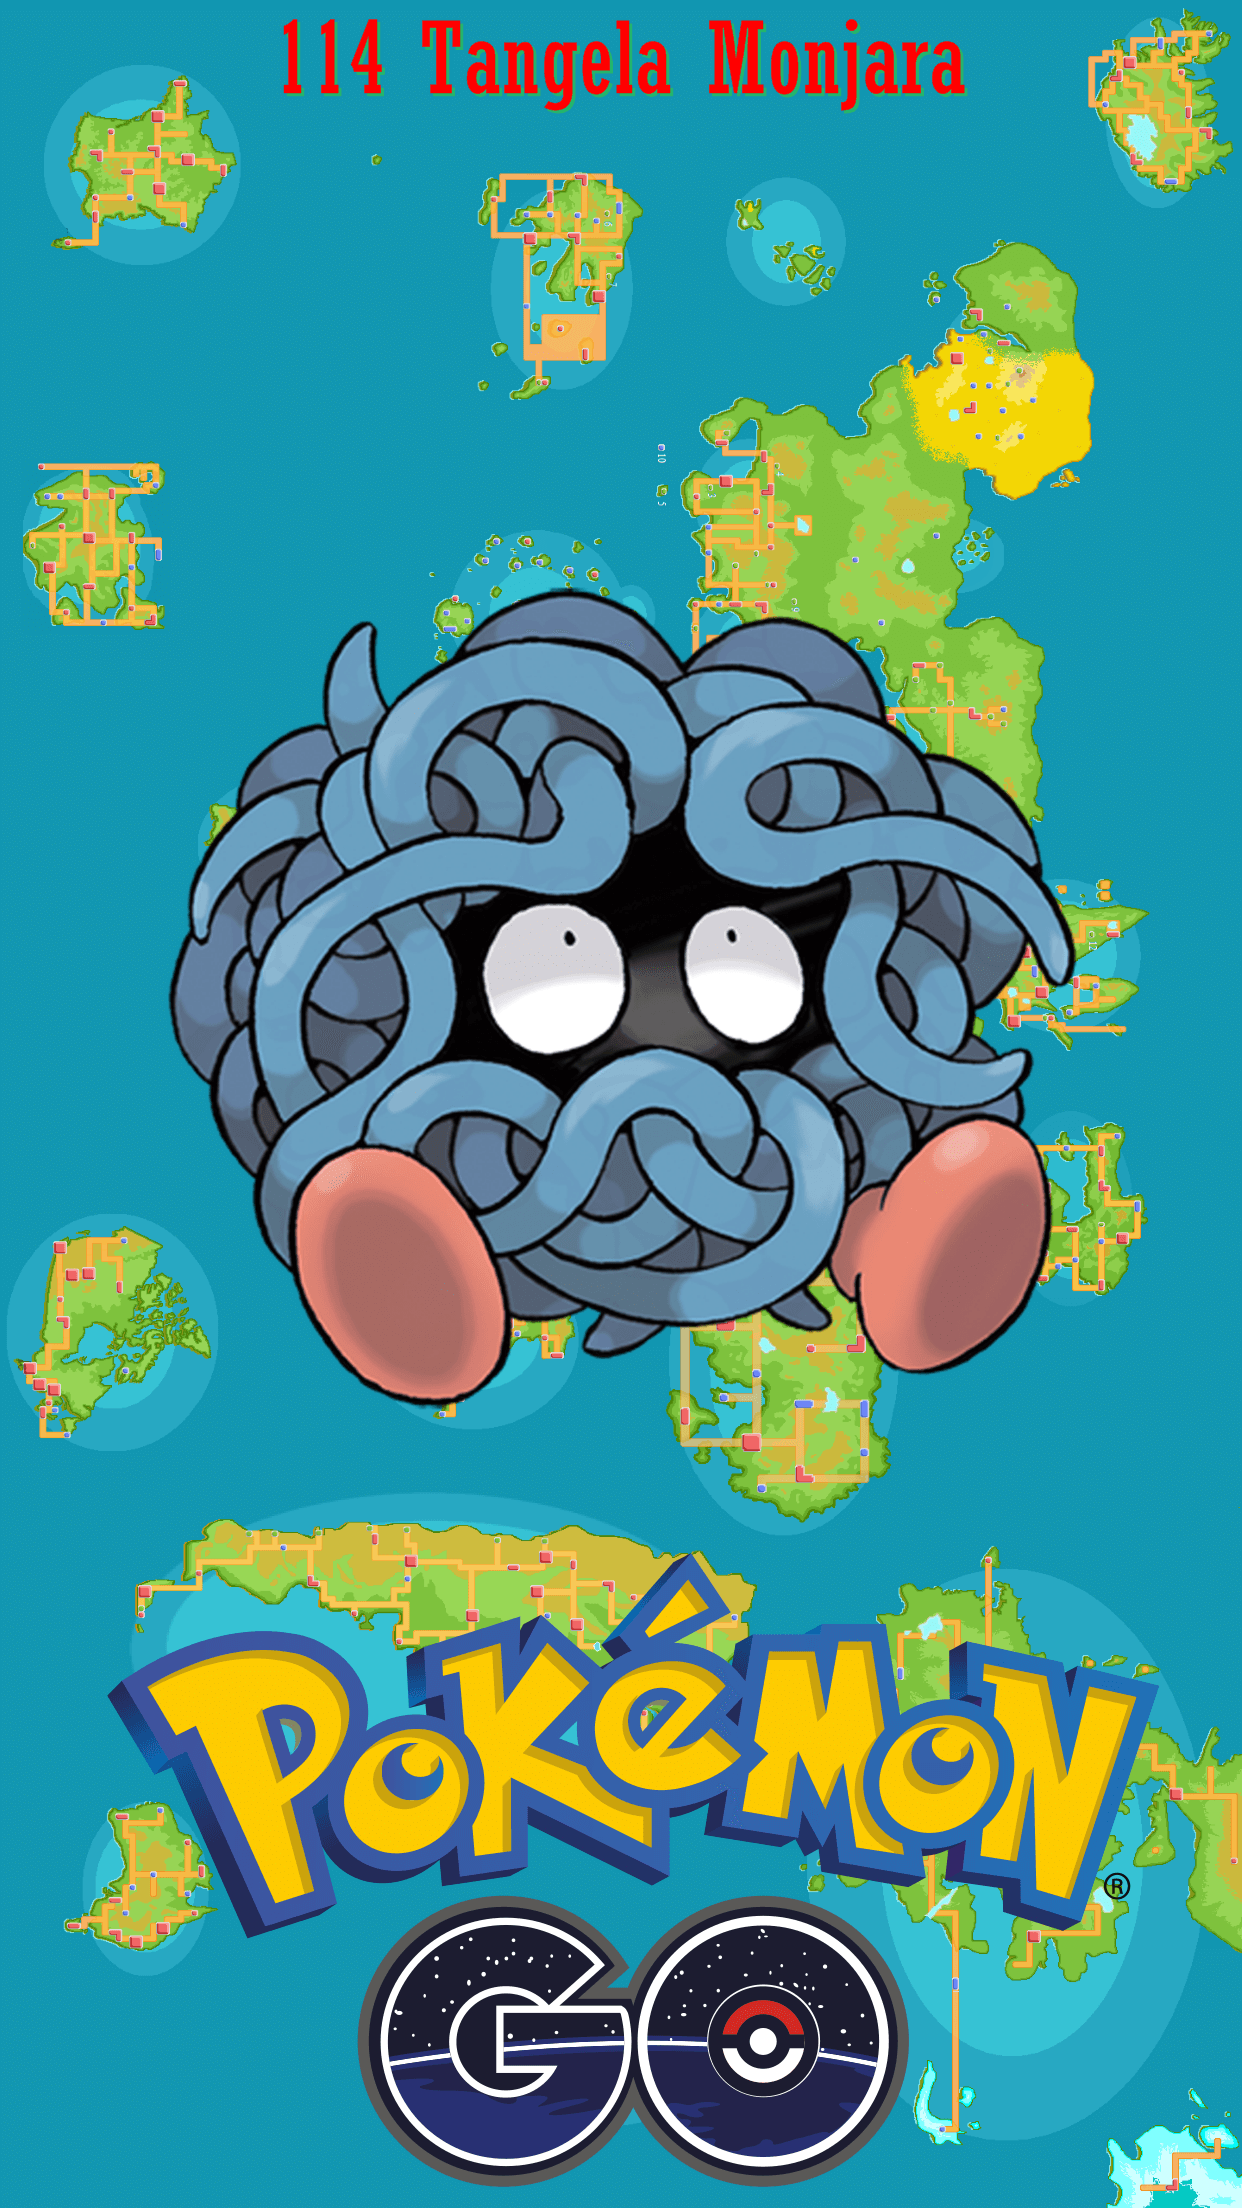 114 Street Map Tangela Monjara | Wallpaper